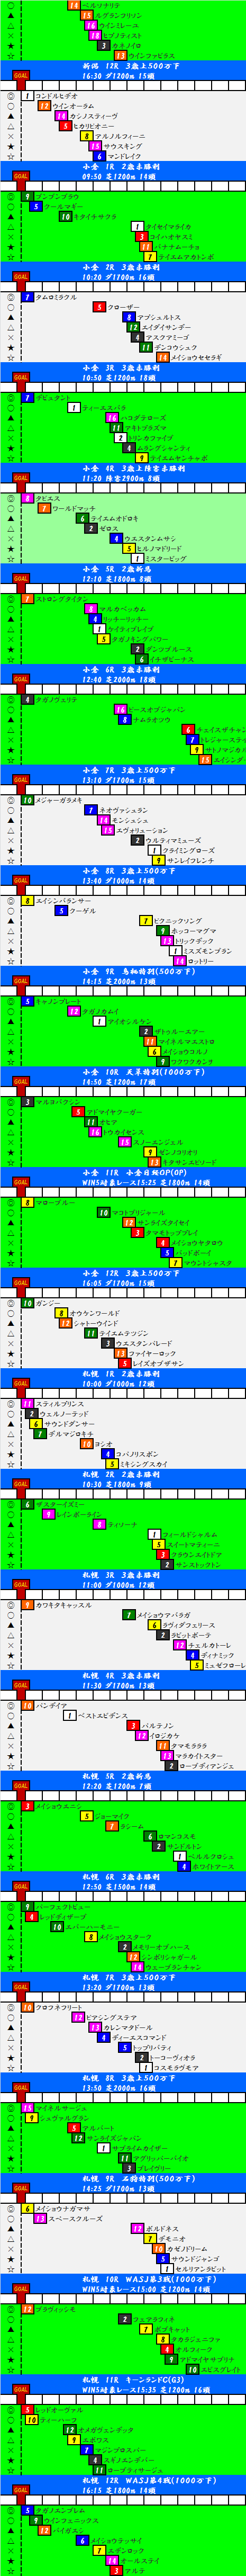 2015083002.png